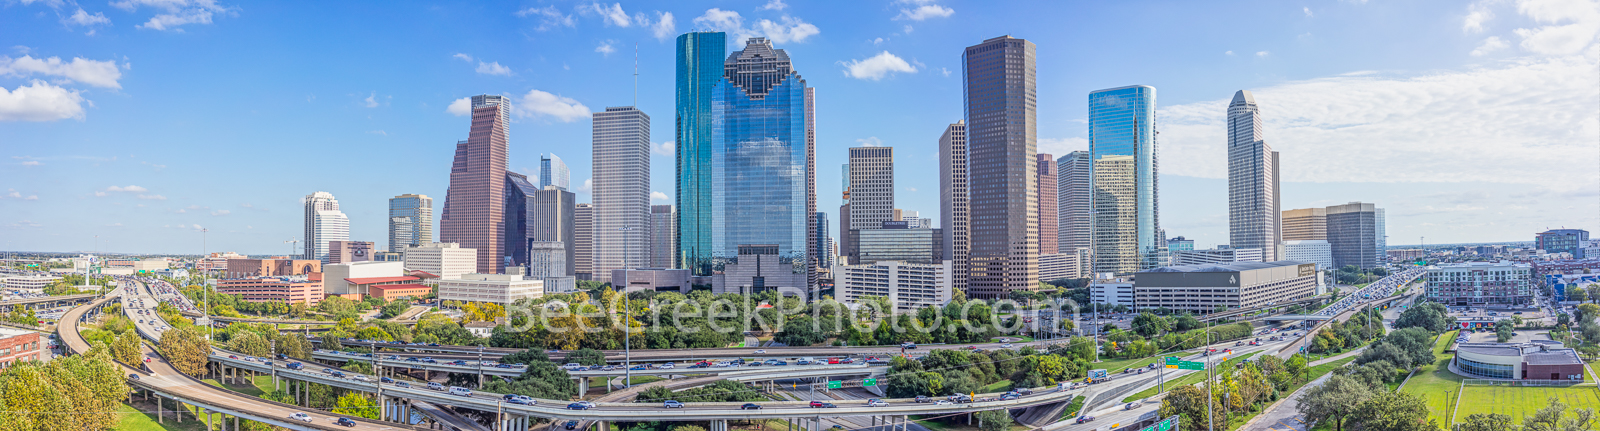 Houston, skyline, Houston skyline, day, blue sky, daytime, aerial, panorama, pano,  cityscape, clouds,  city, downtown, skyscrapers, buildings, high rise, IH45, museum district, art, Houston stock, , photo